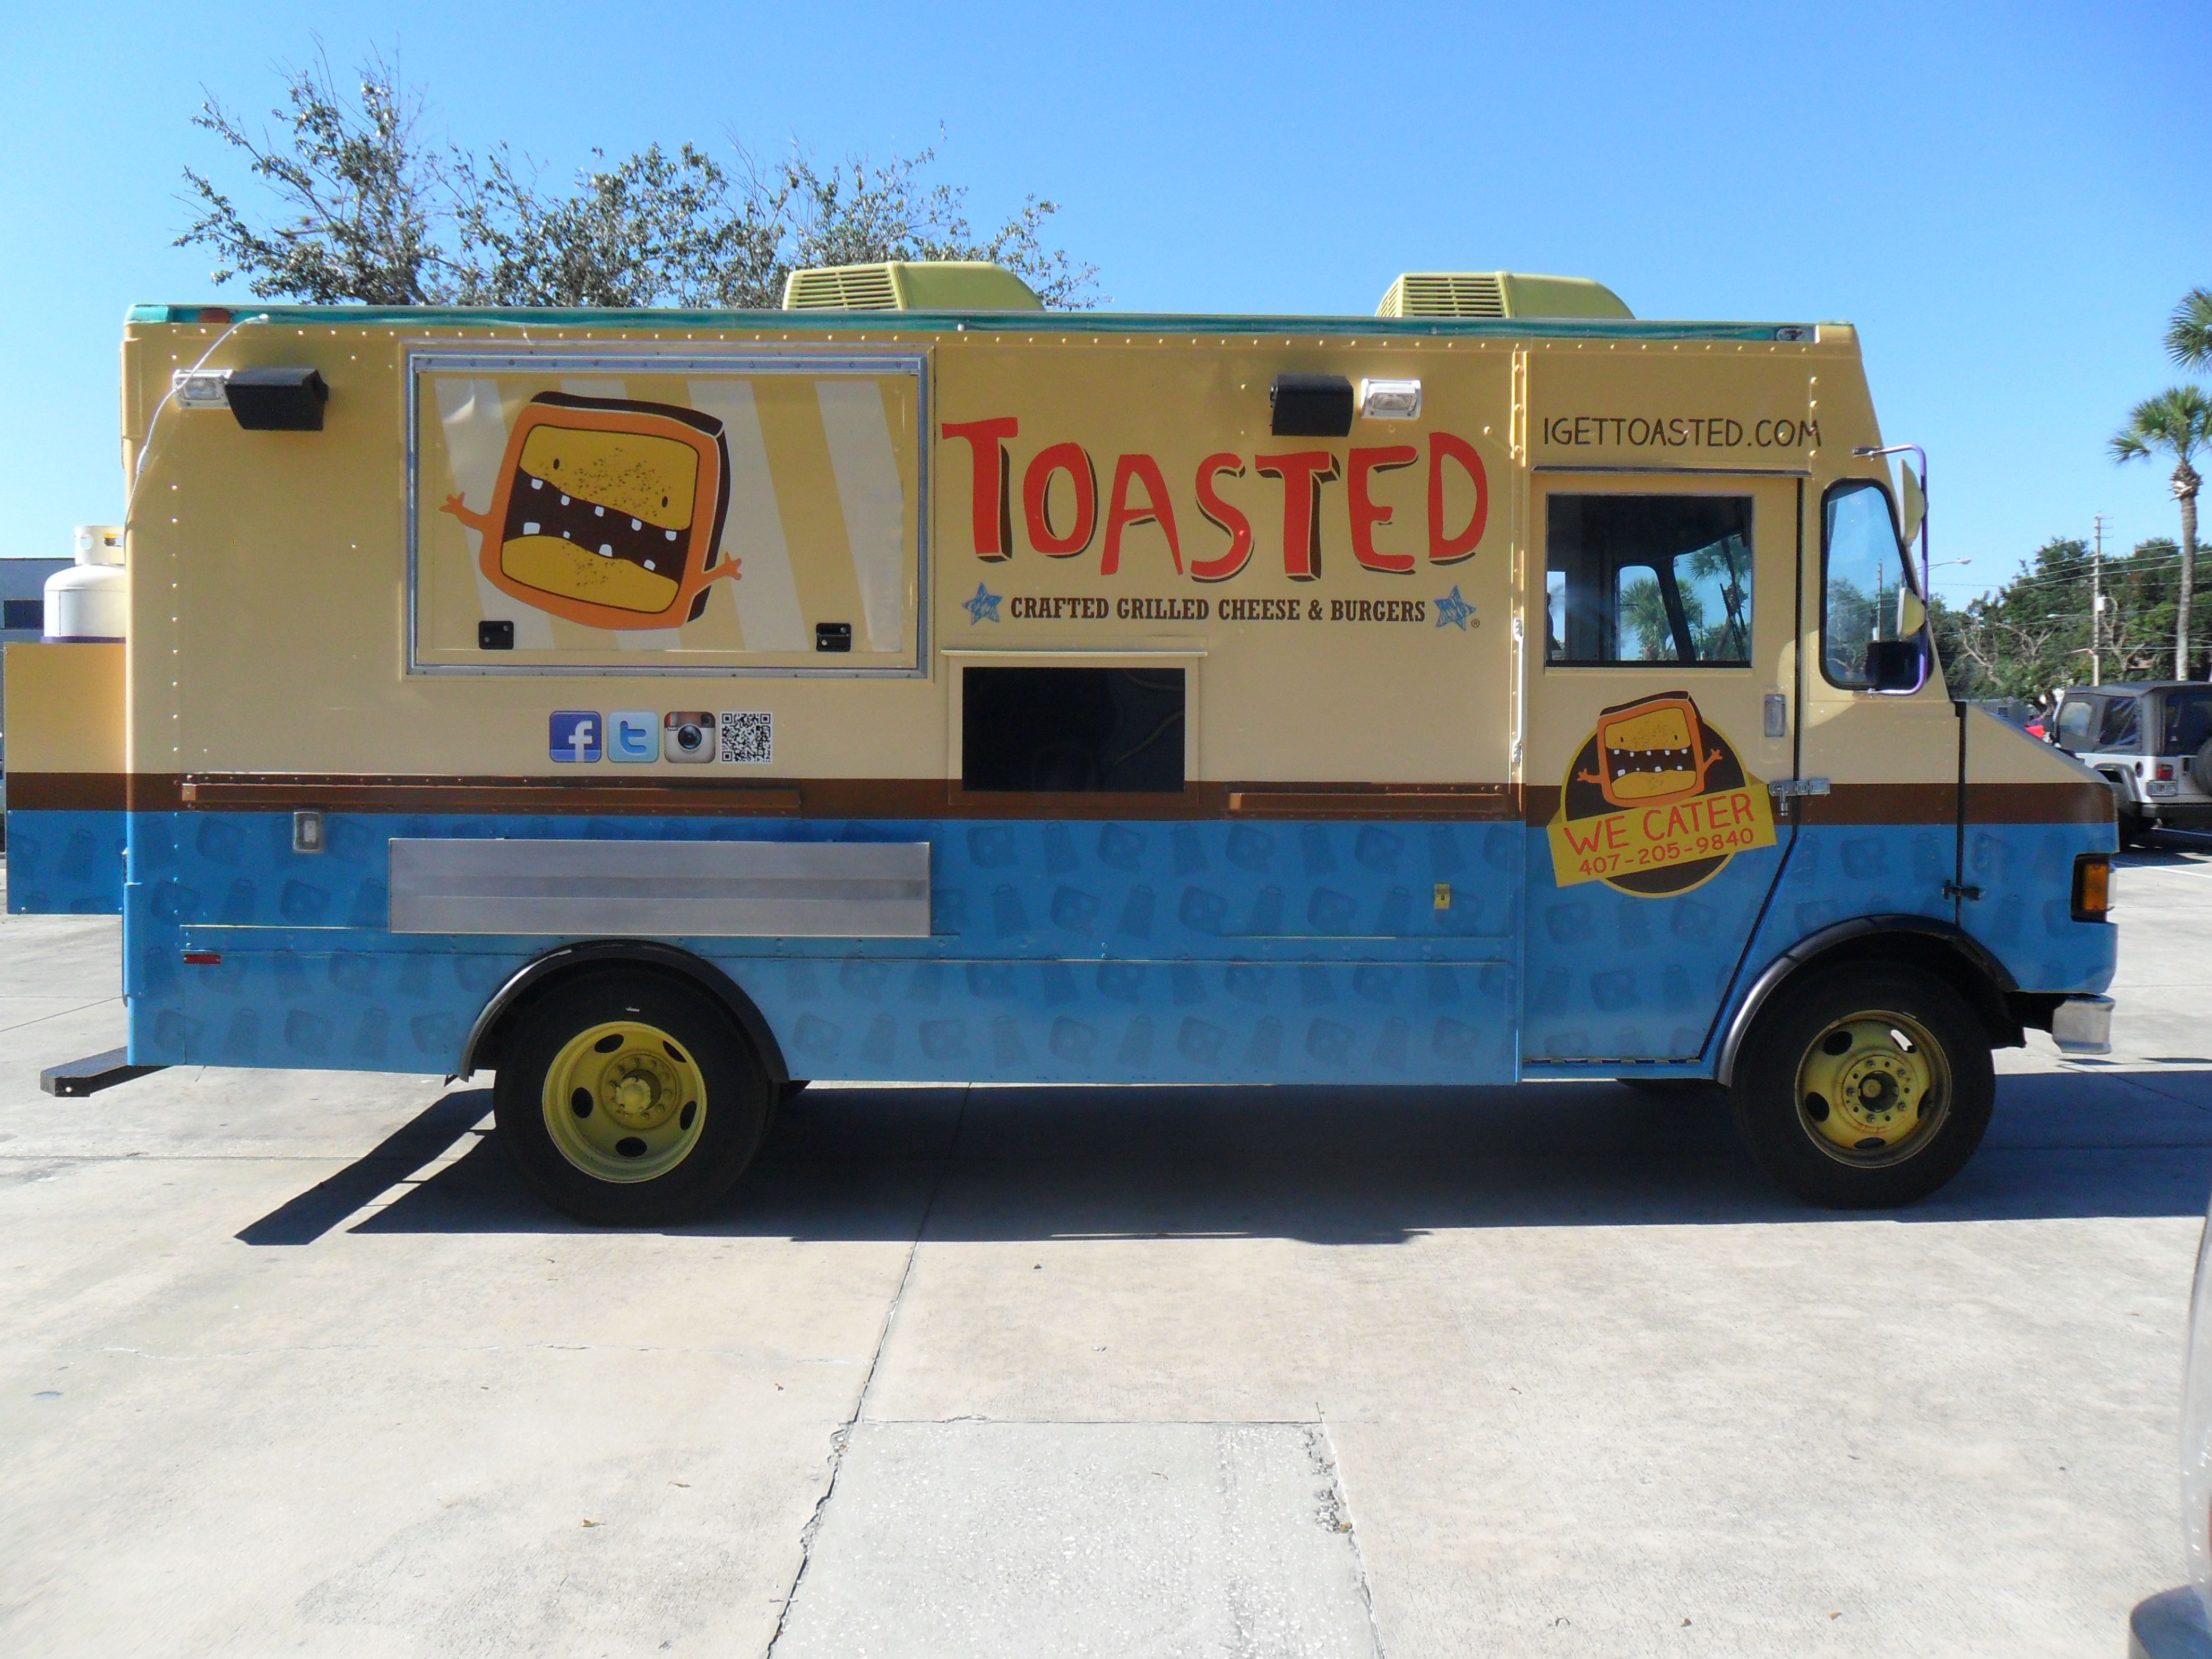 sponsorship marketing used on food truck for Toasted